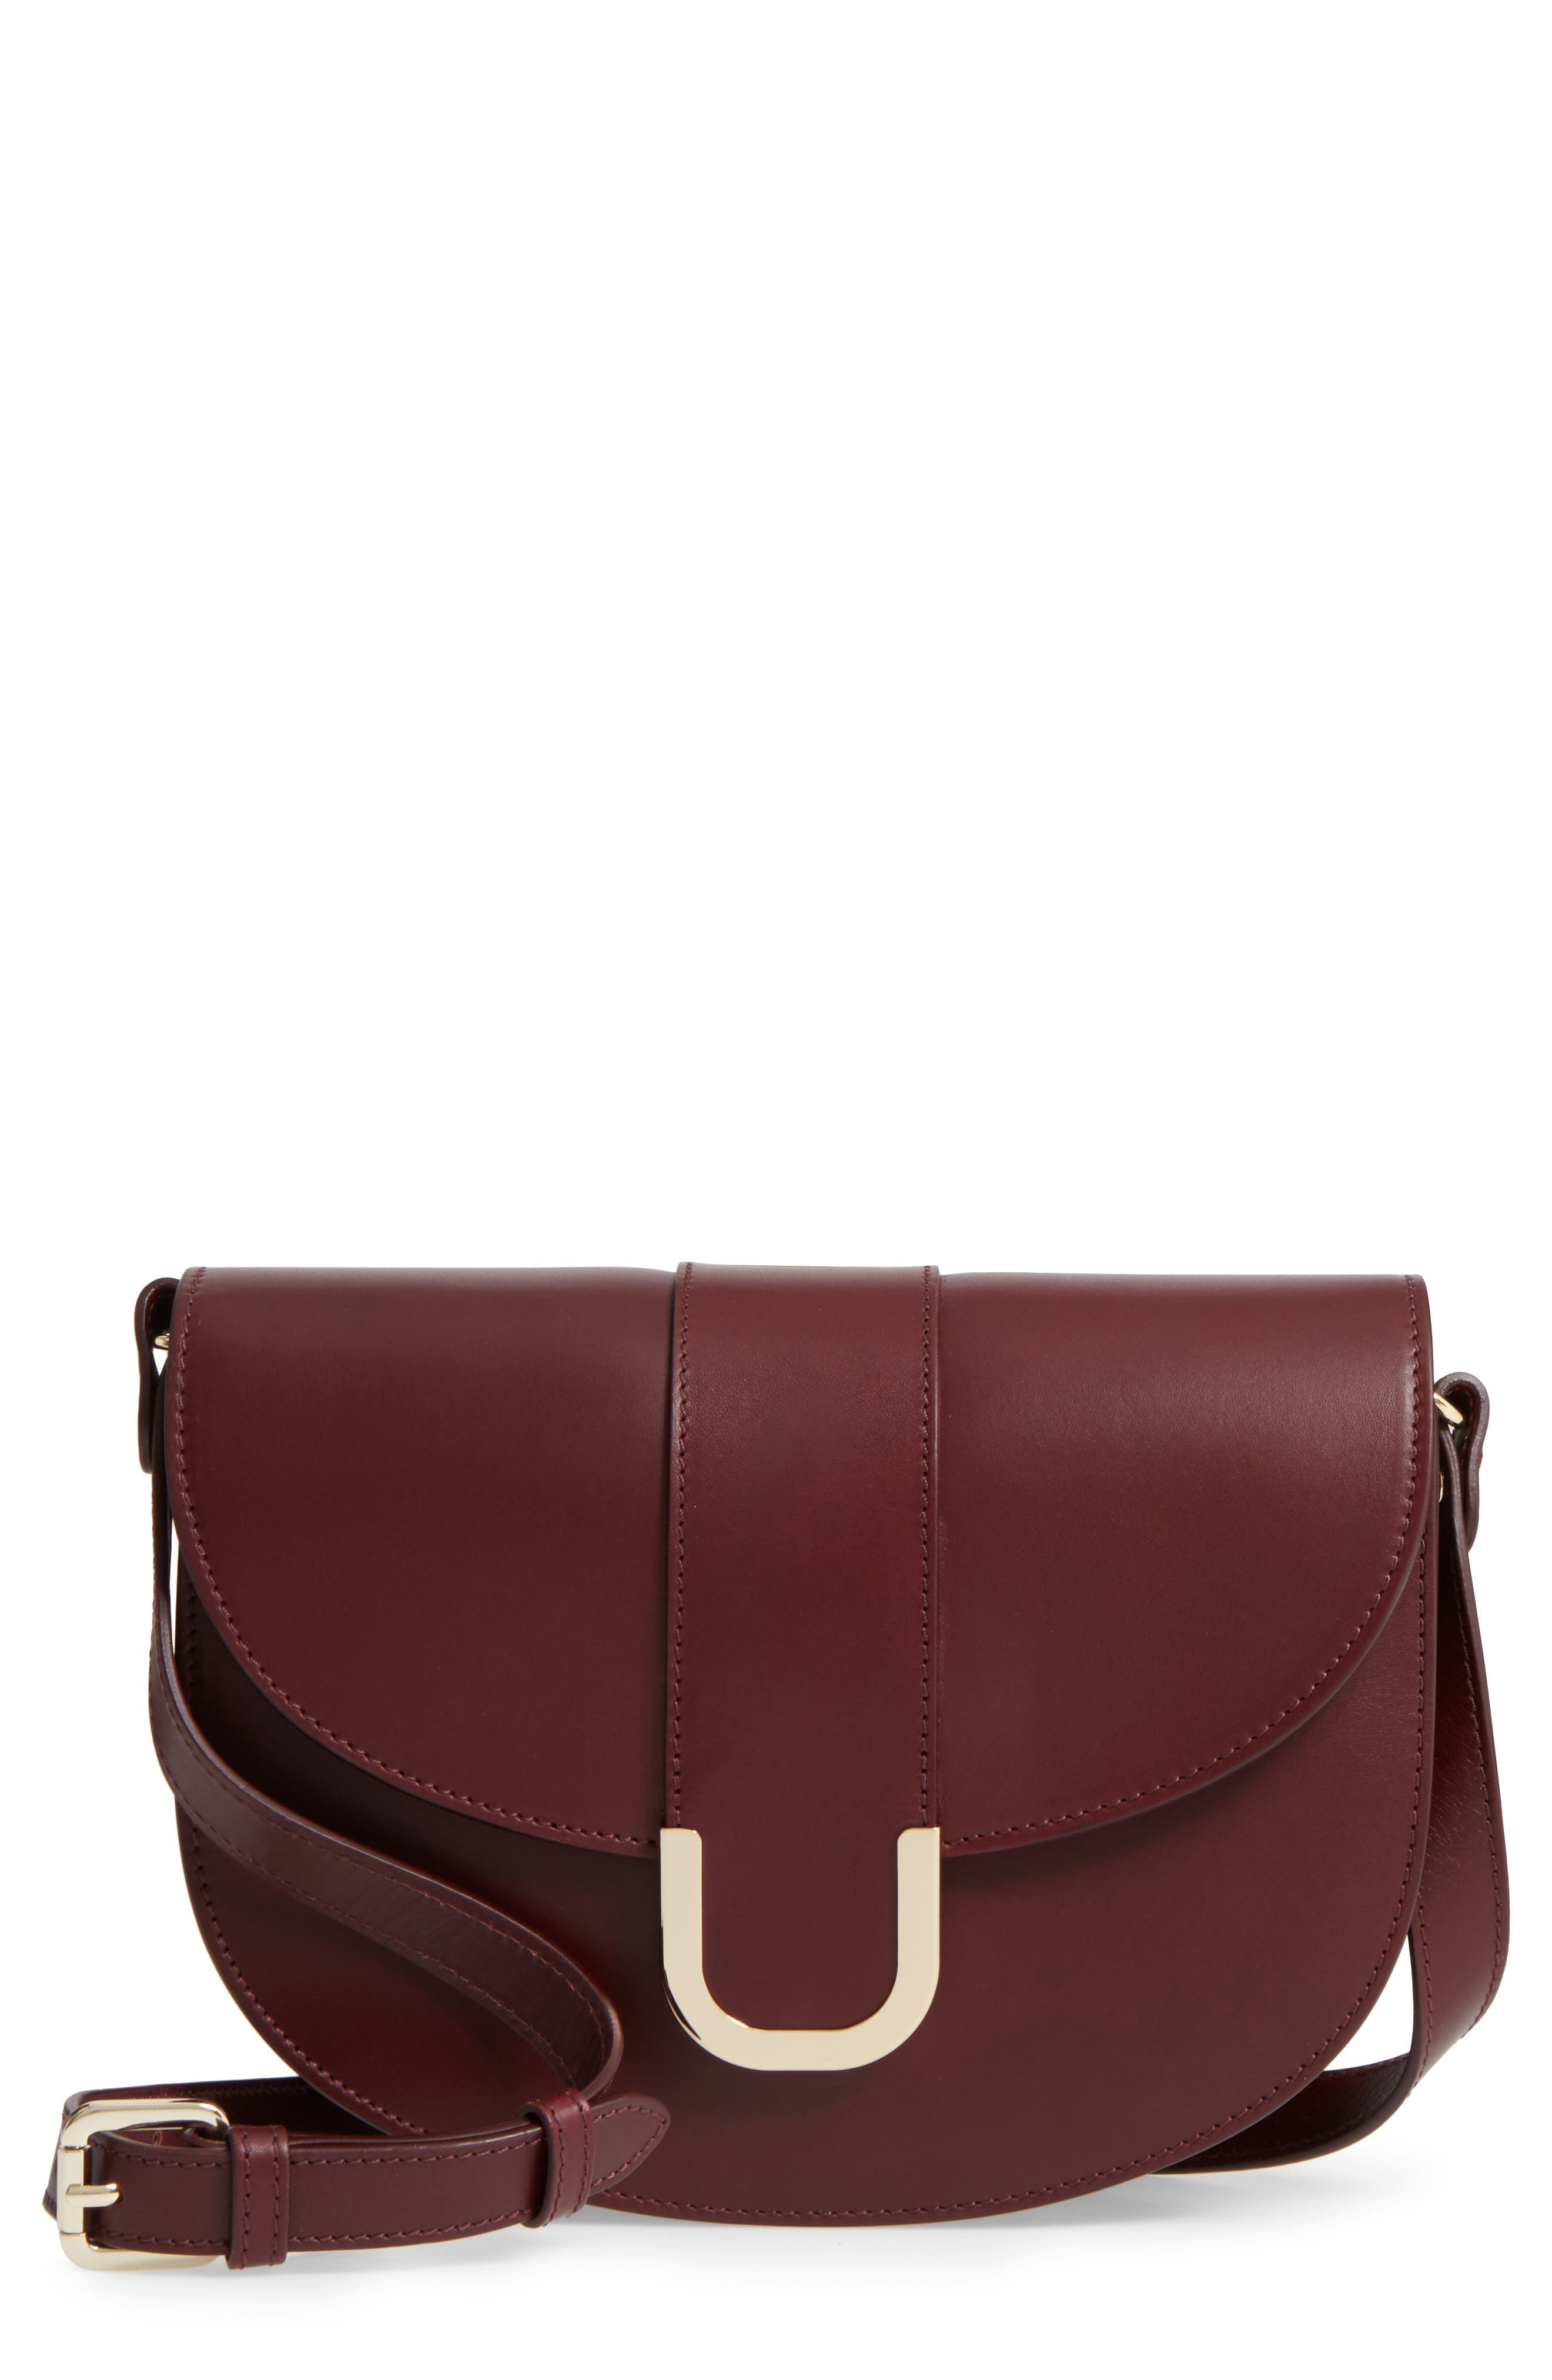 A.P.C. Soho Calfskin Leather Saddle Bag